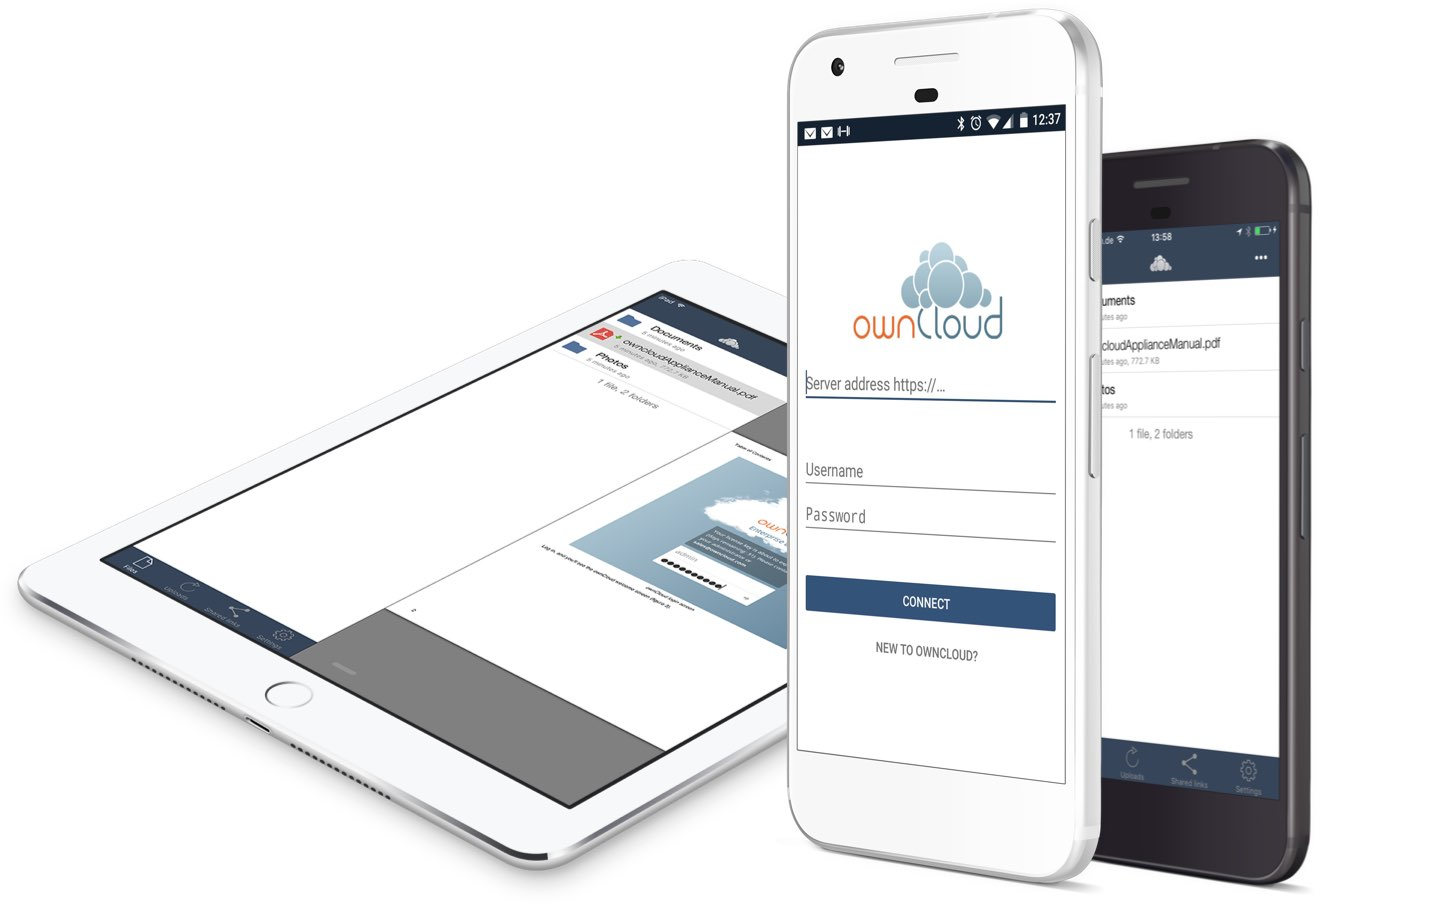 ownCloud Mobile Client – Secure Enterprise File Sync and Share – Sichers Enterprise File Sync und Share | ownCloud